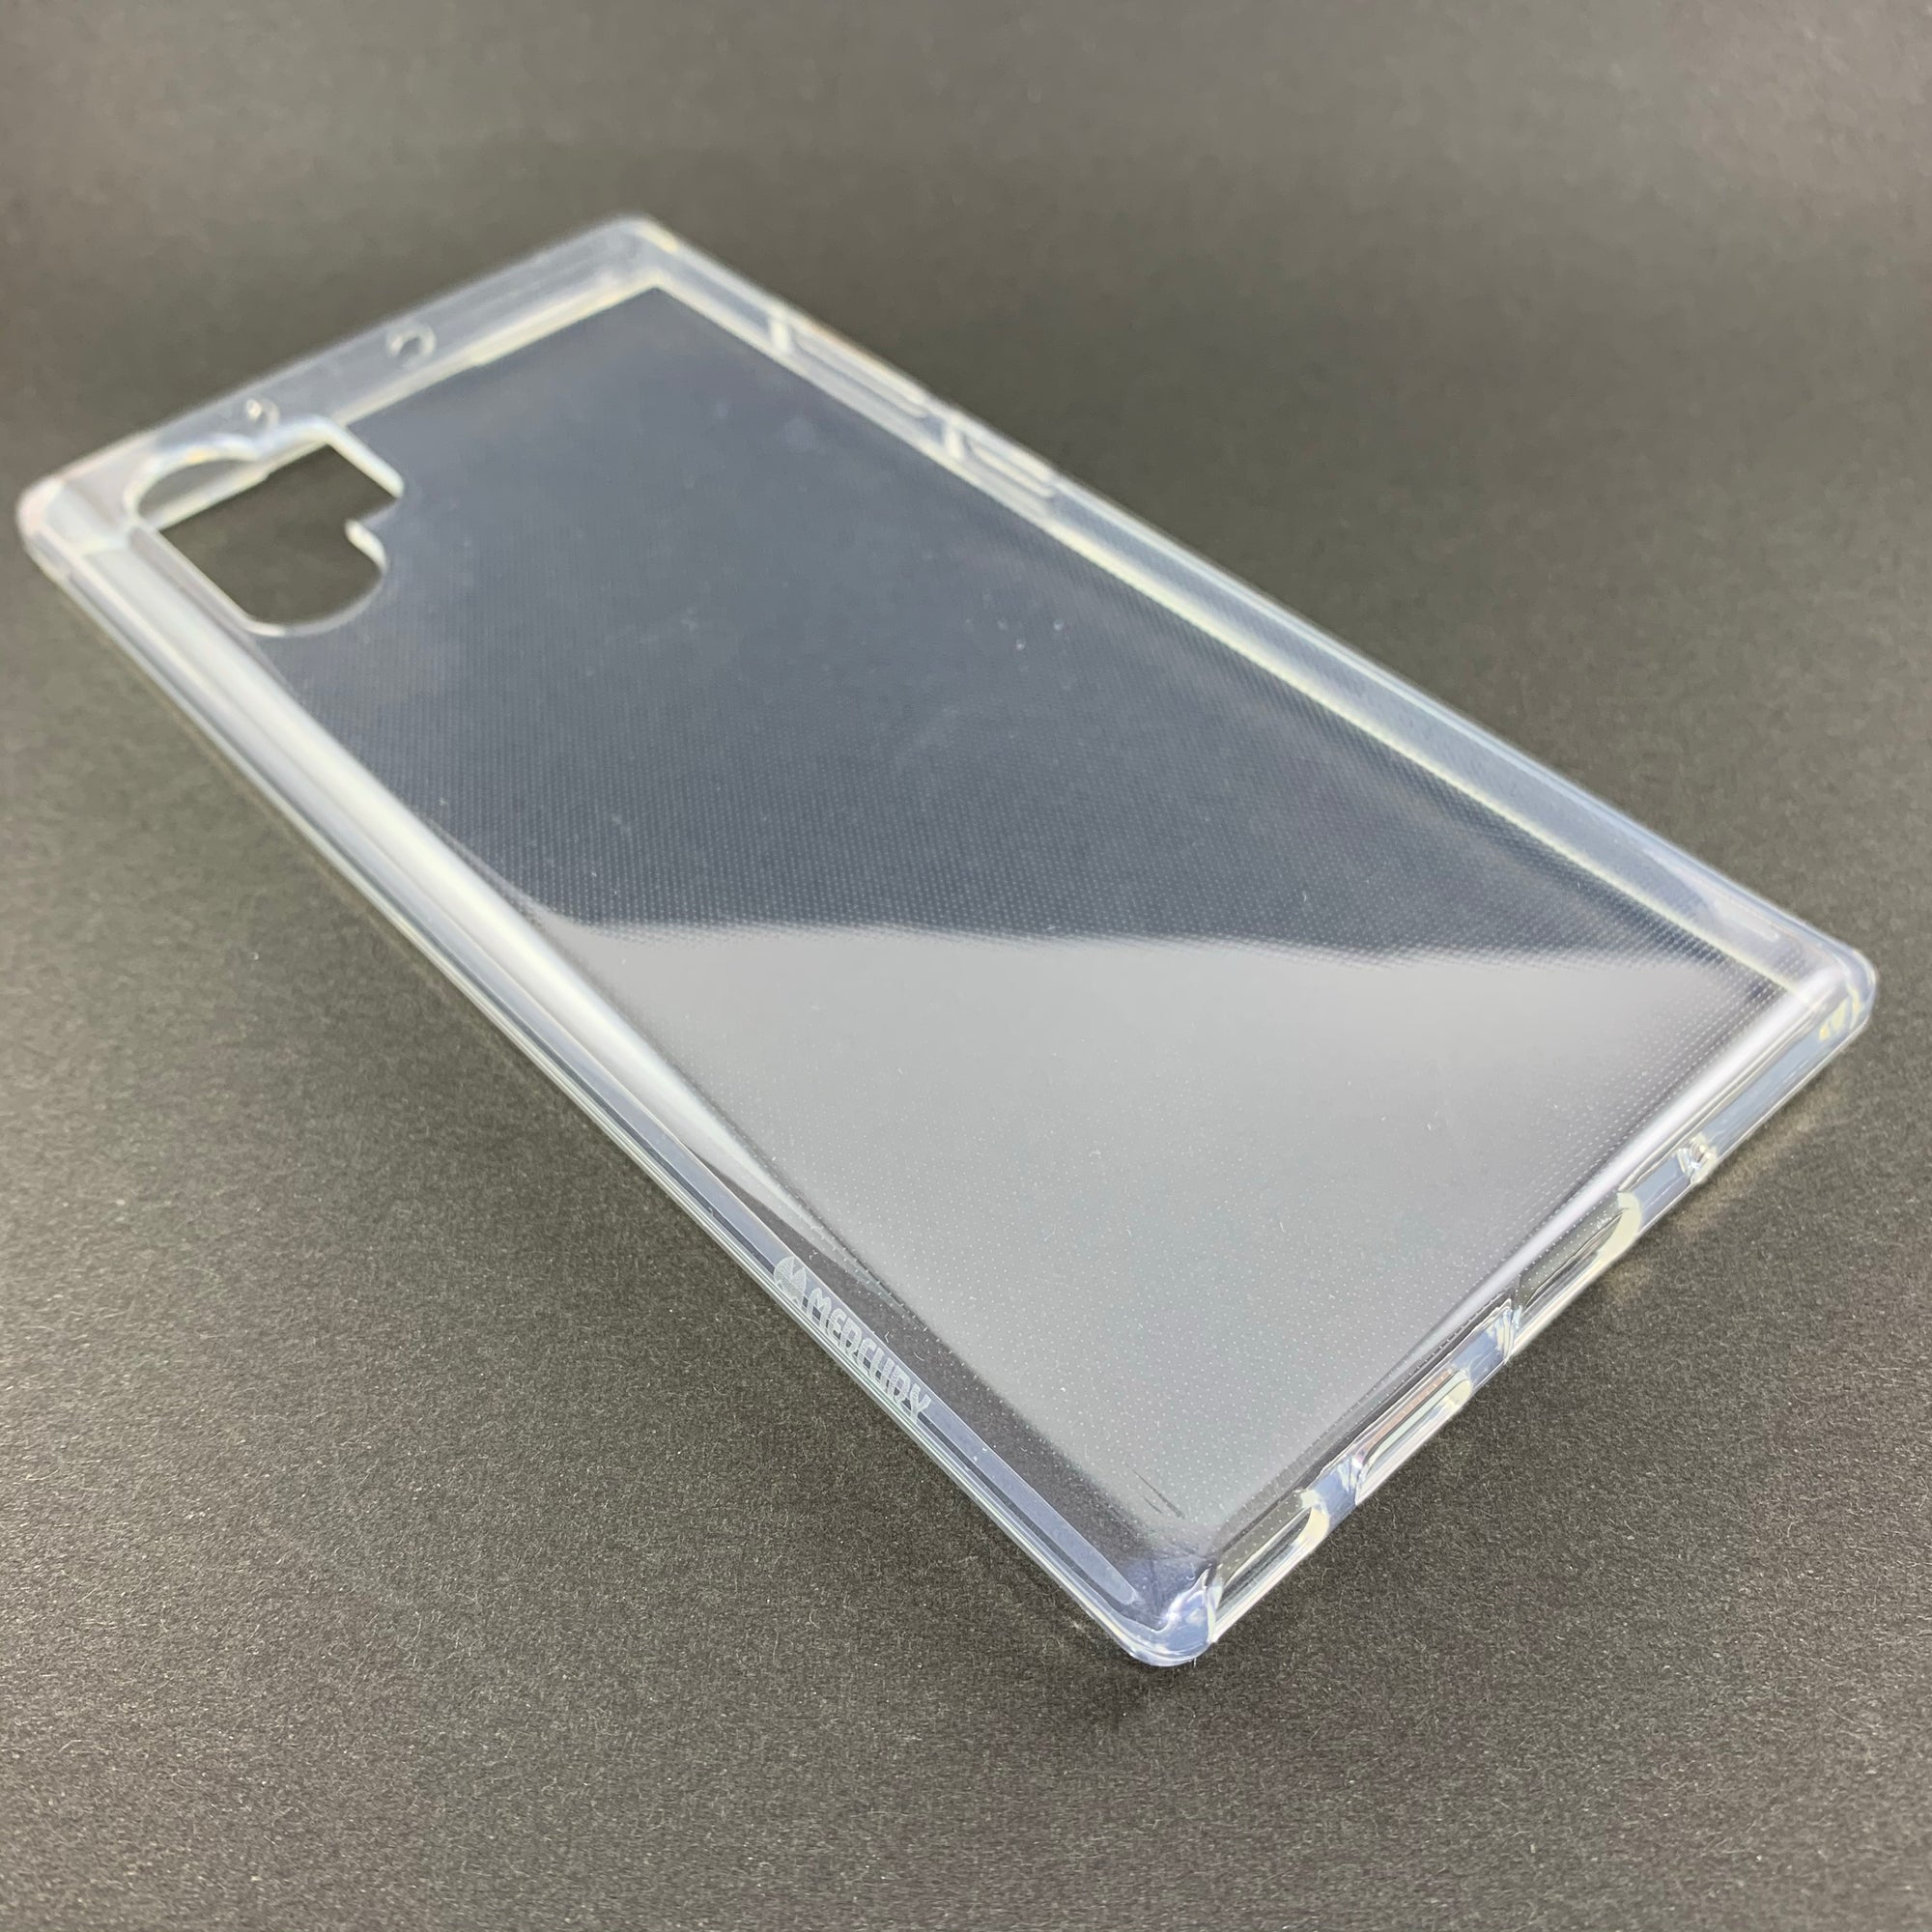 GOOSPERY Clear Jelly Case (Made in Korea) for Samsung Galaxy Note 10+ / Note 10